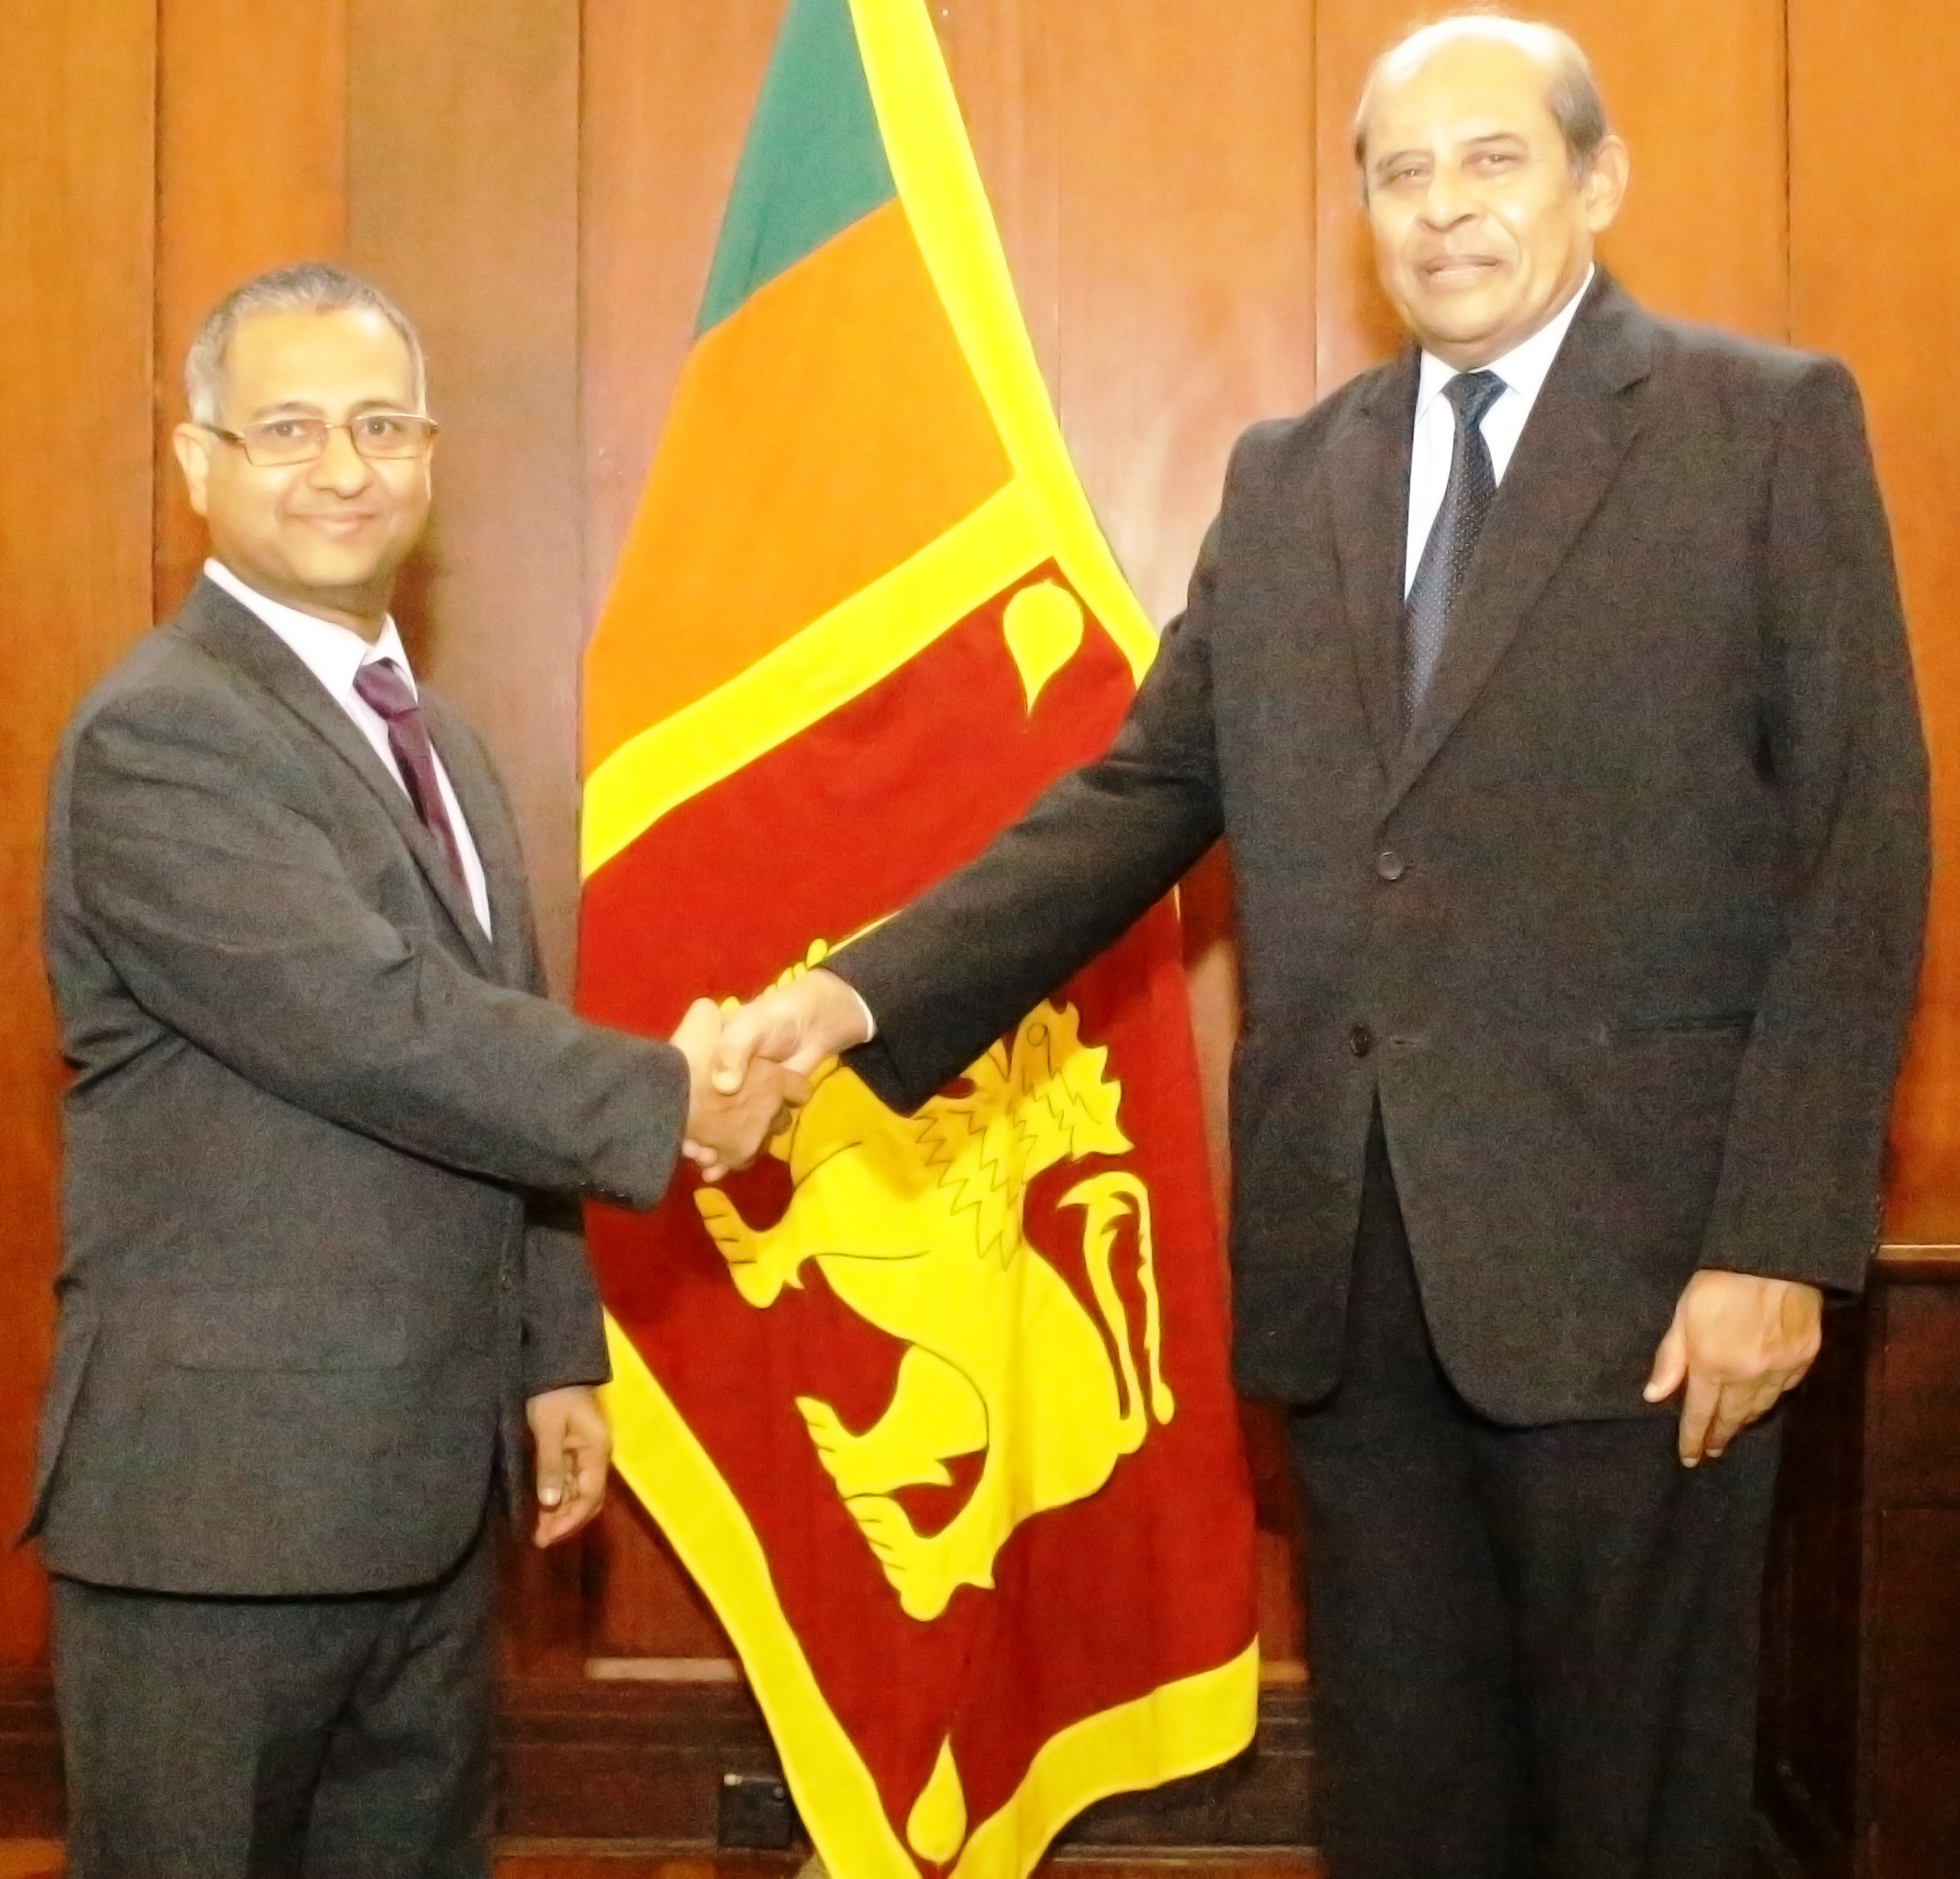 UN SPECIAL RAPPORTEUR ON FREEDOM OF RELIGION OR BELIEF VISITS SRI LANKA